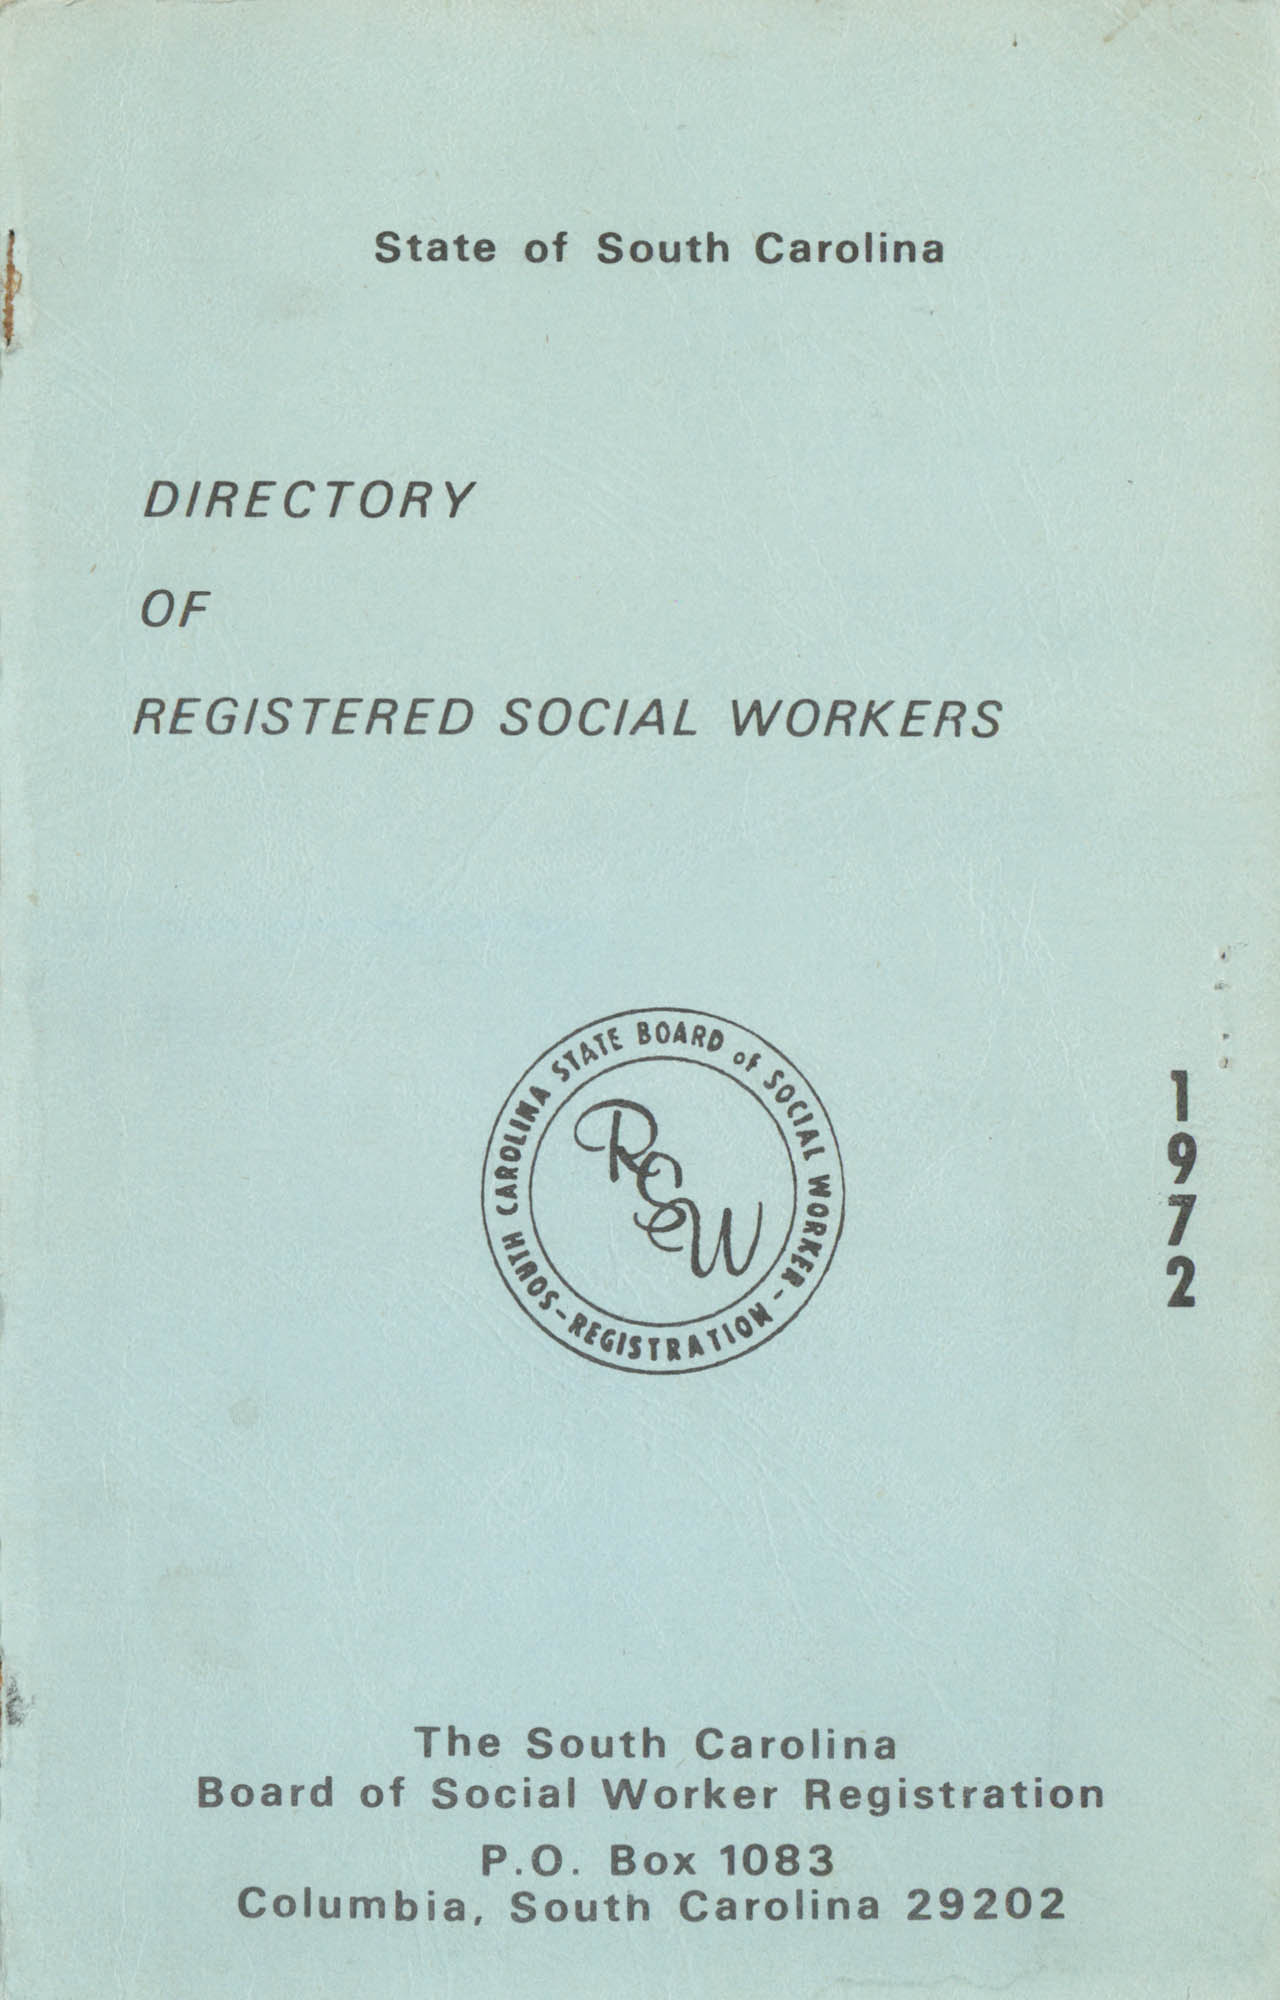 State of South Carolina Directory of Registered Social Workers, 1972